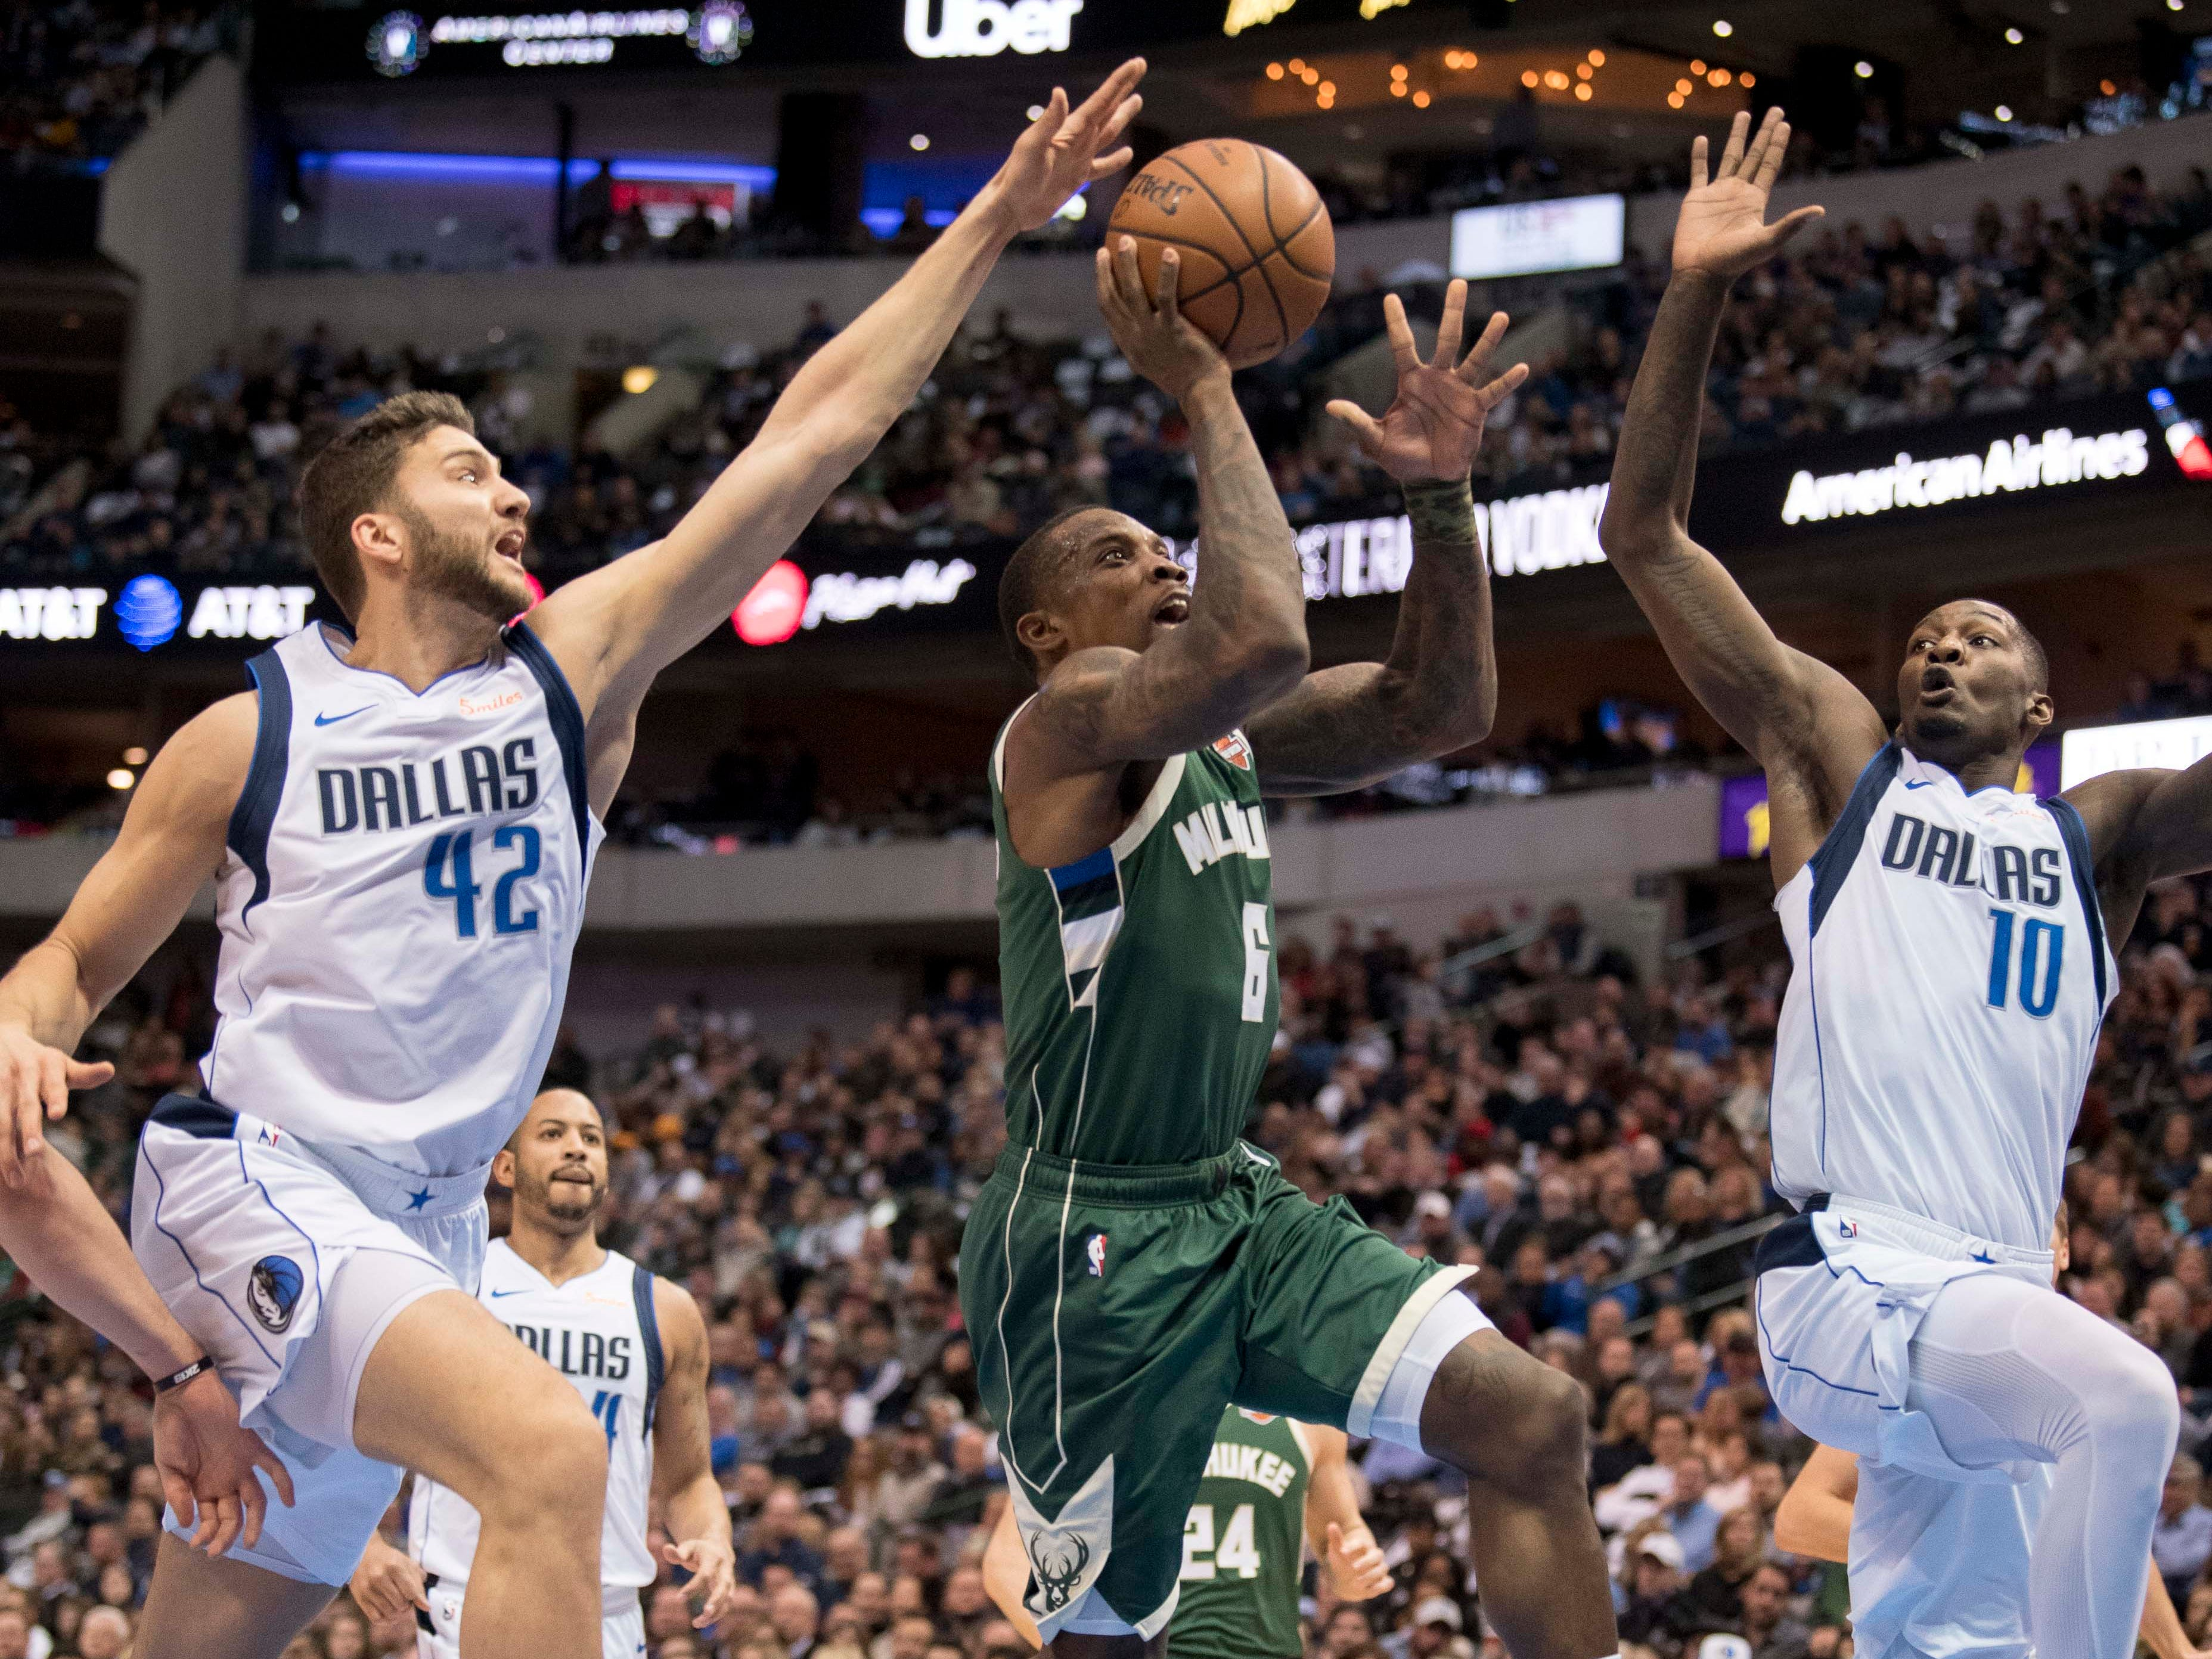 Bucks guard Eric Bledsoe goes up for a shot between Maxi Kleber and Dorian Finney-Smith on a drive to the hoop during the second quarter Friday.